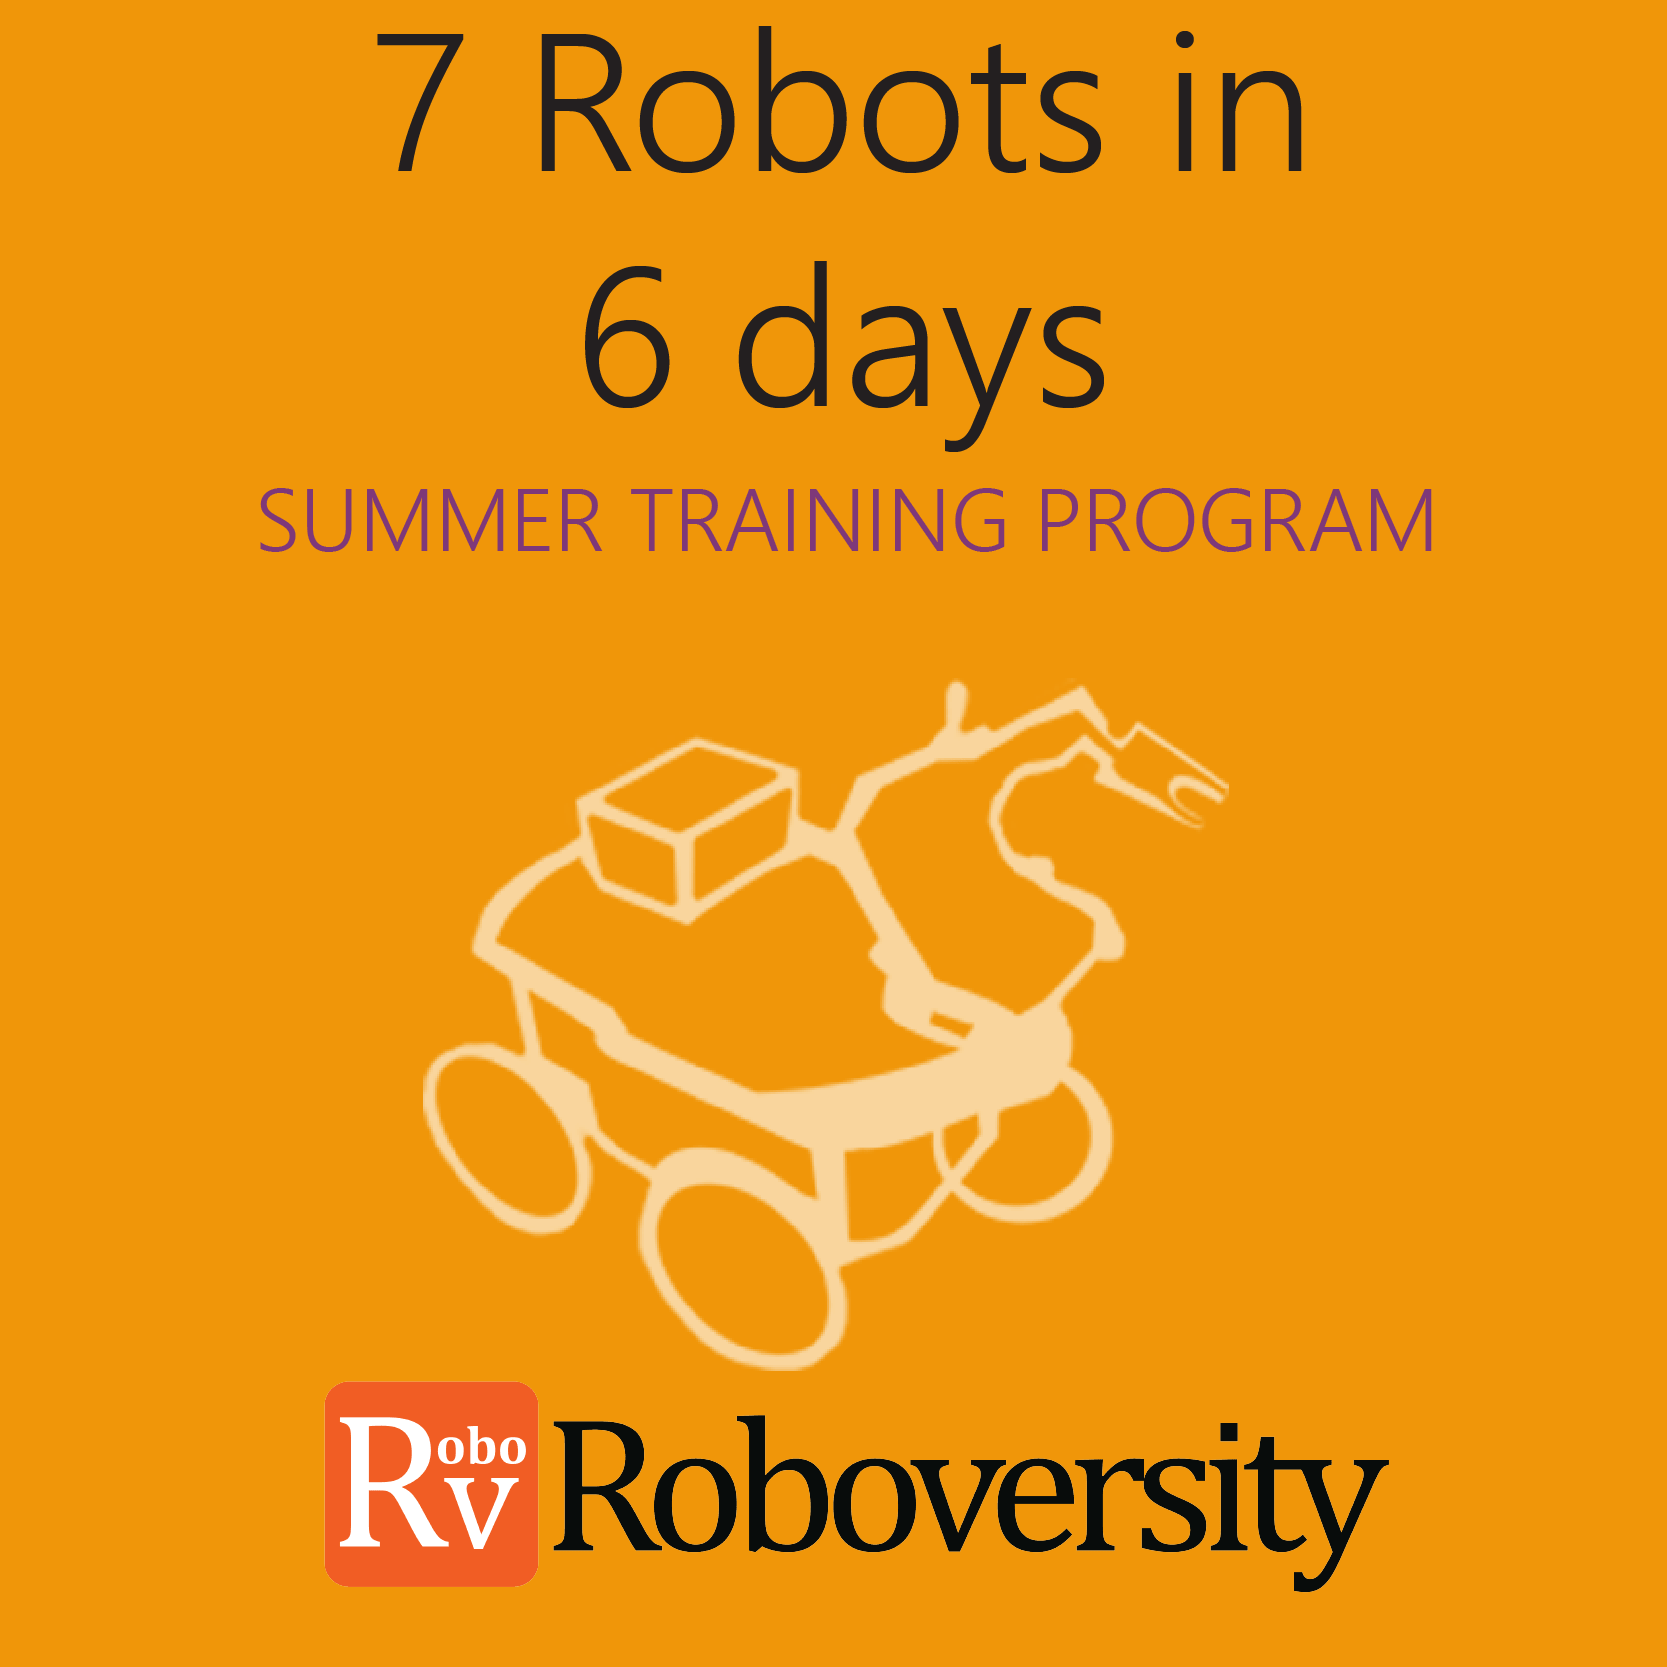 Summer Training Program in Robotics - 7 Robots in 6 Days in Mumbai